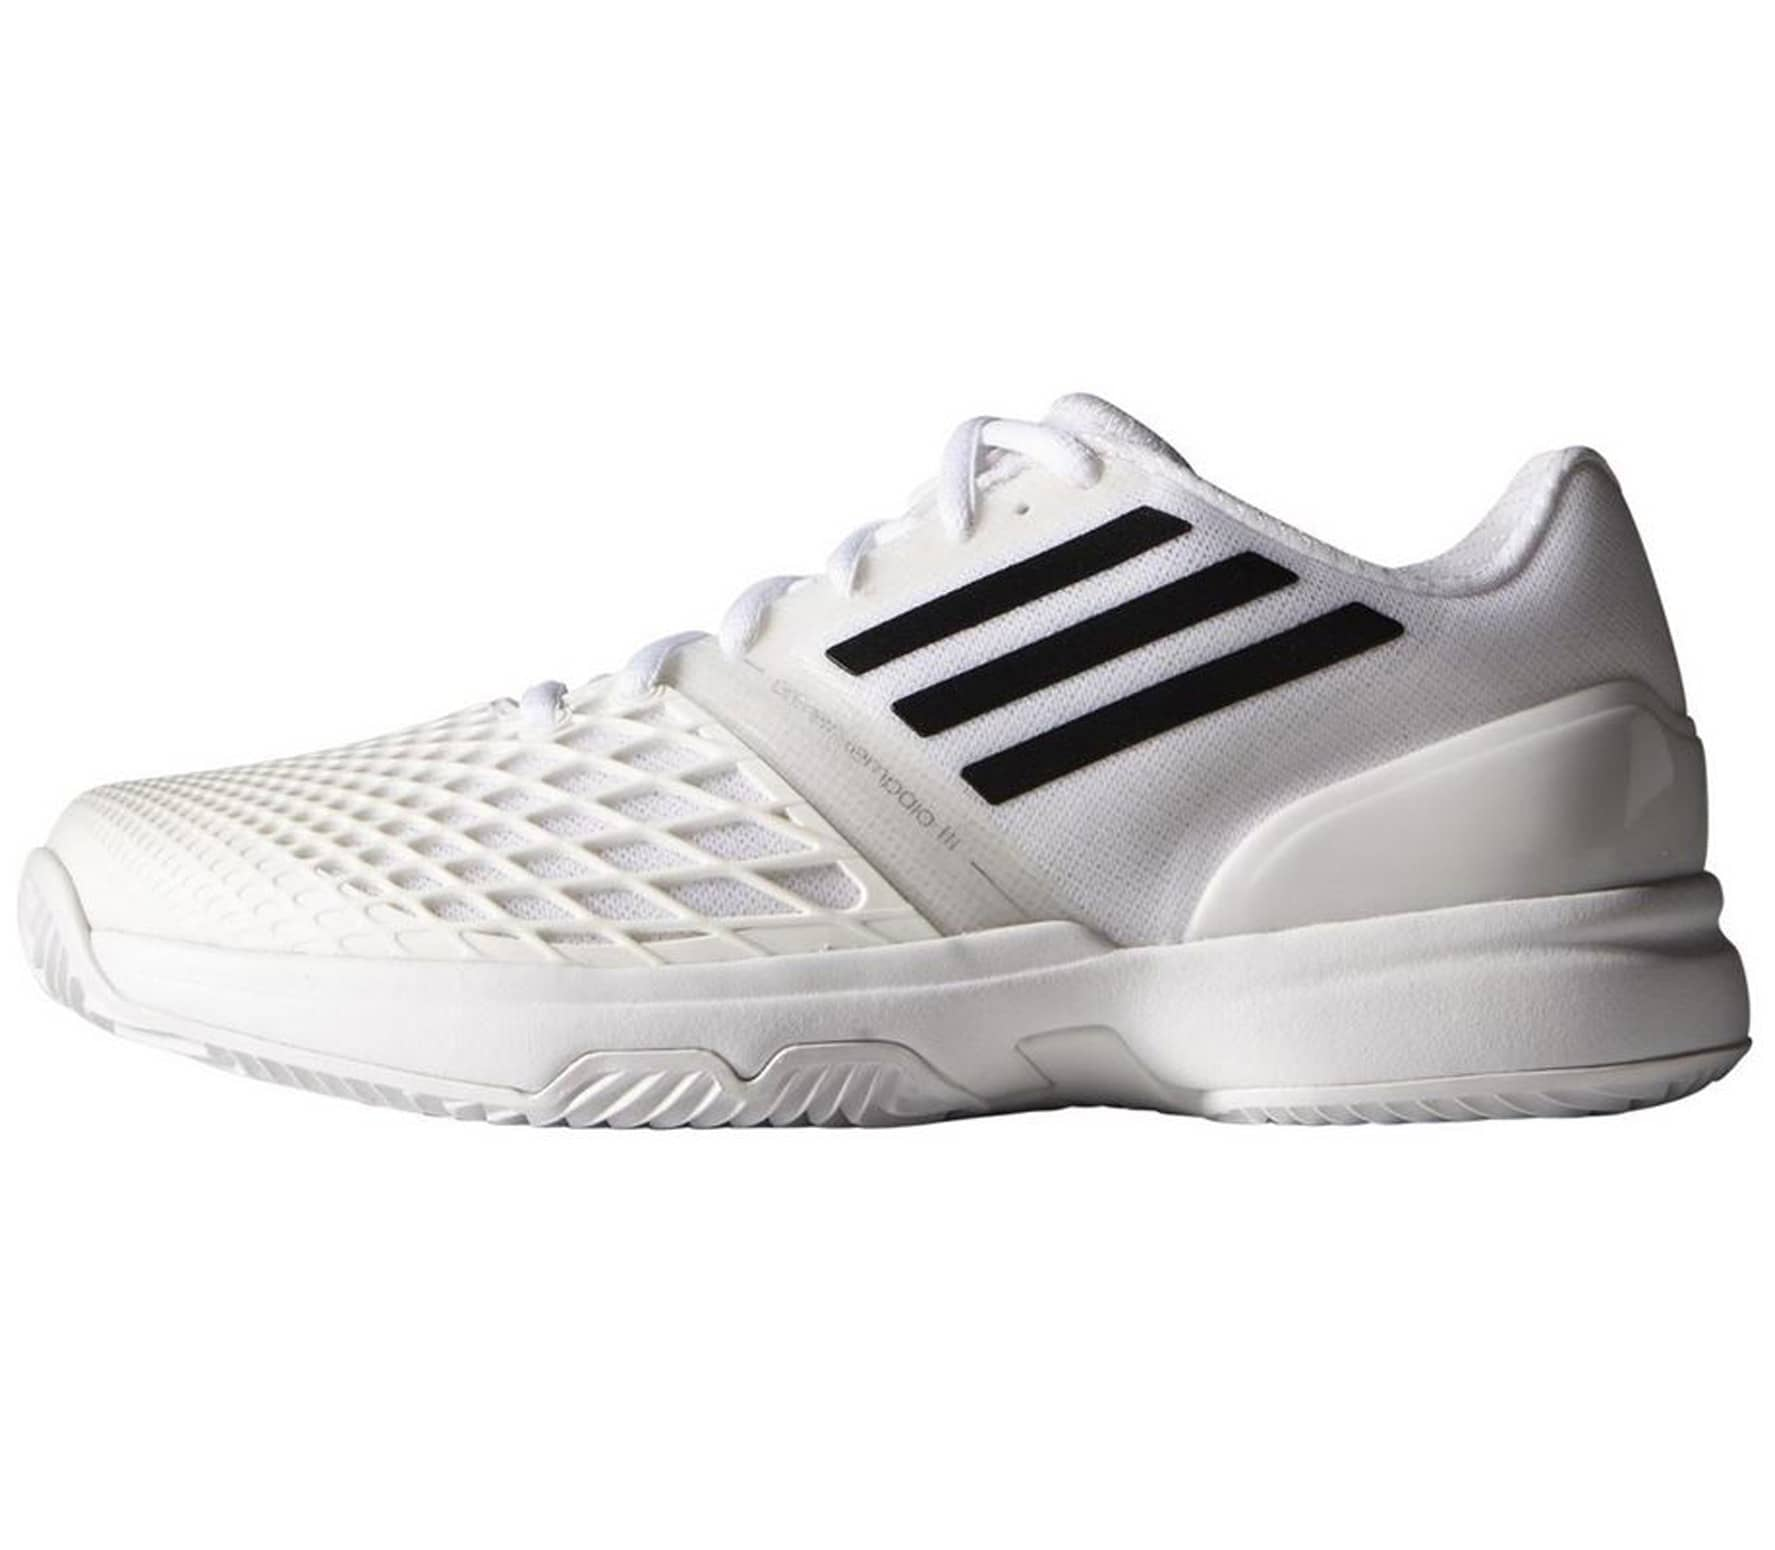 pretty nice 60525 081ac Adidas - CC Adizero Tempaia III Roland Garros Clay women s tennis shoes  (white green